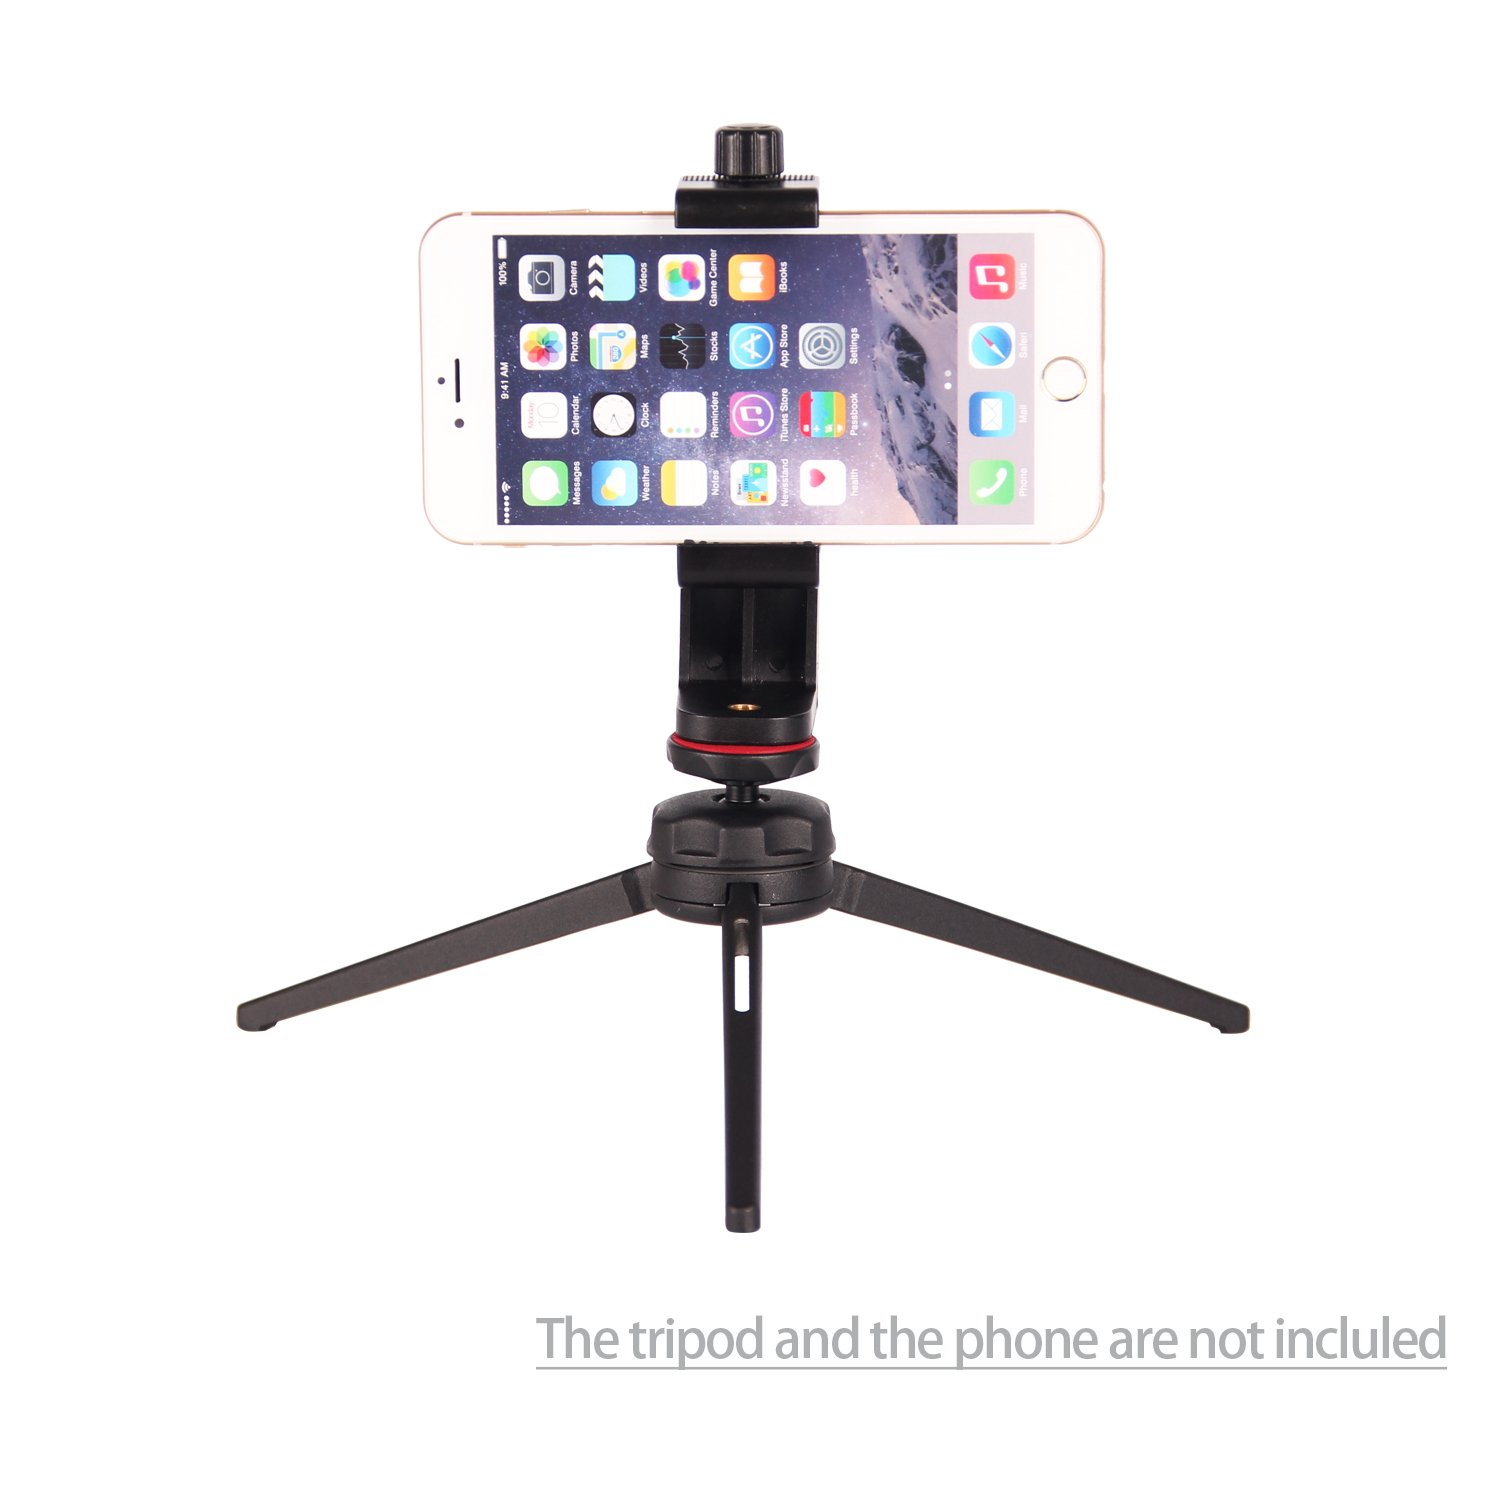 POLAM-FOTO Universal Cell Phone Tripod Adapter Adjustable Phone Holder Mount, Tripod Mount, Fits iPhone Samsung and All Phones, Rotates Vertical and Horizontal, Compatible with all tripods